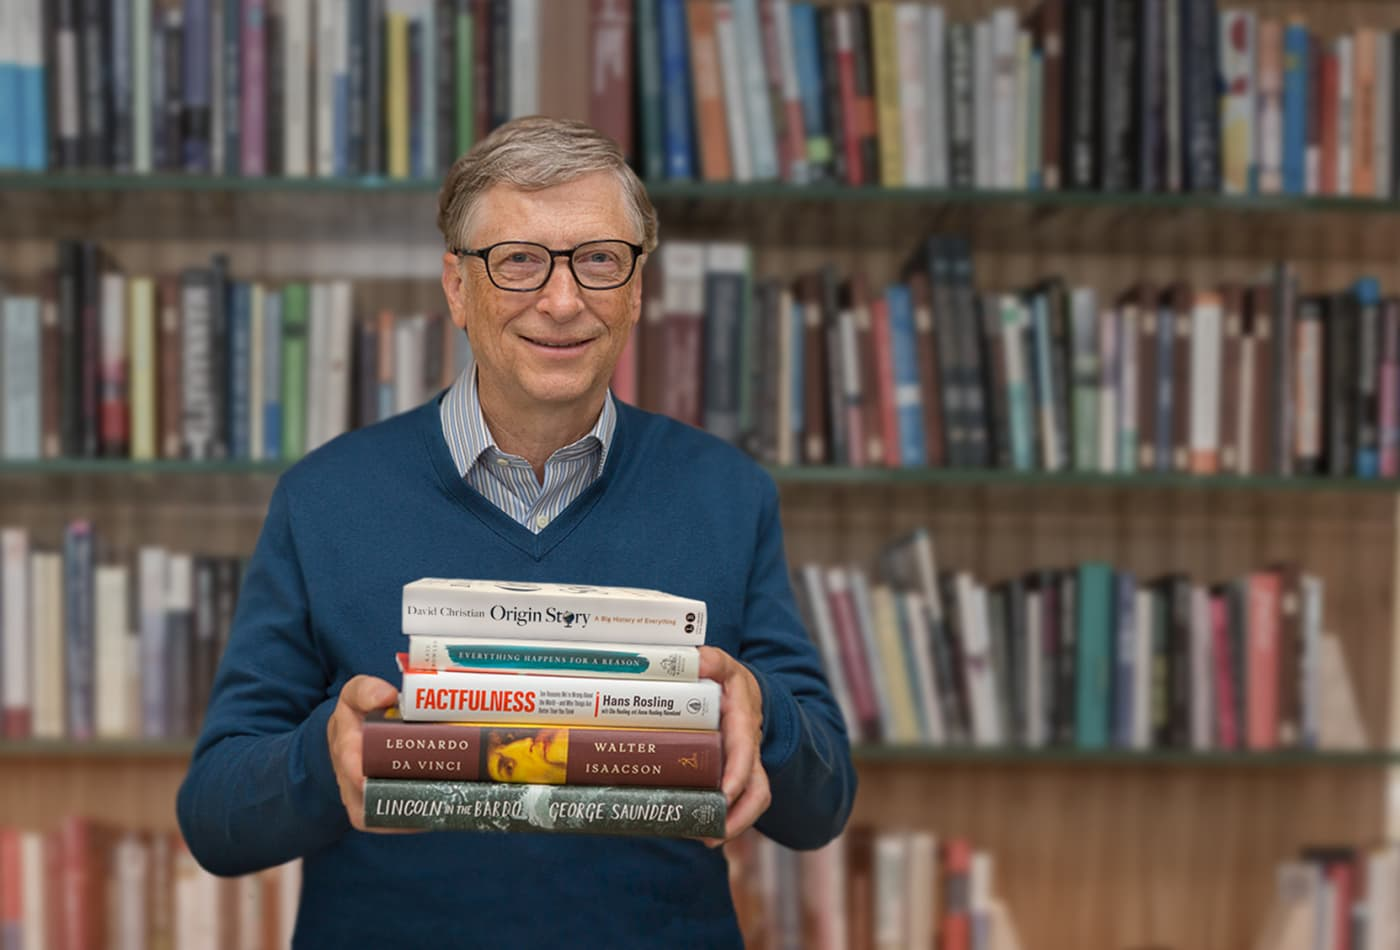 I read the 8 best business books of all time—here's what I